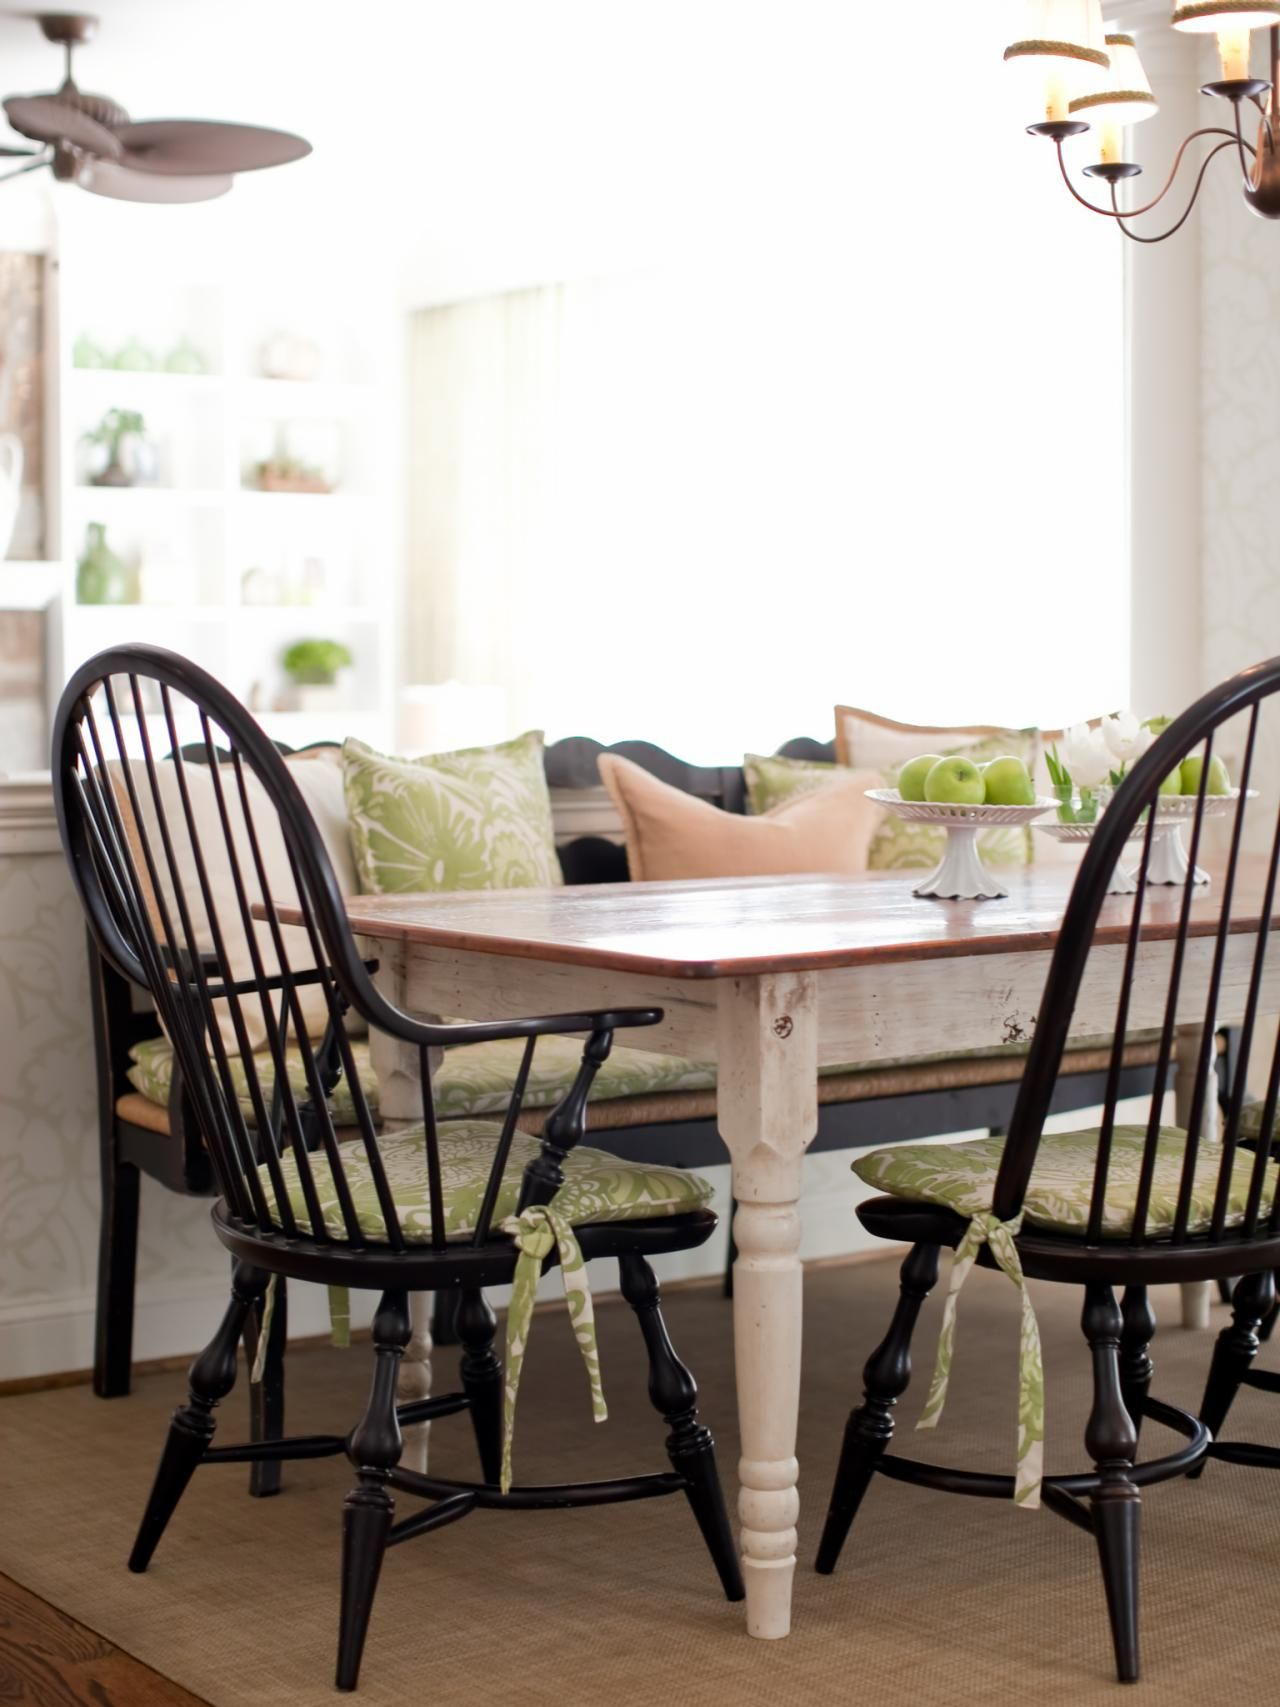 Black chair and white chair - This Country Dining Setting Features A Farmhouse Table With Black Windsor Chairs And Bench To Give